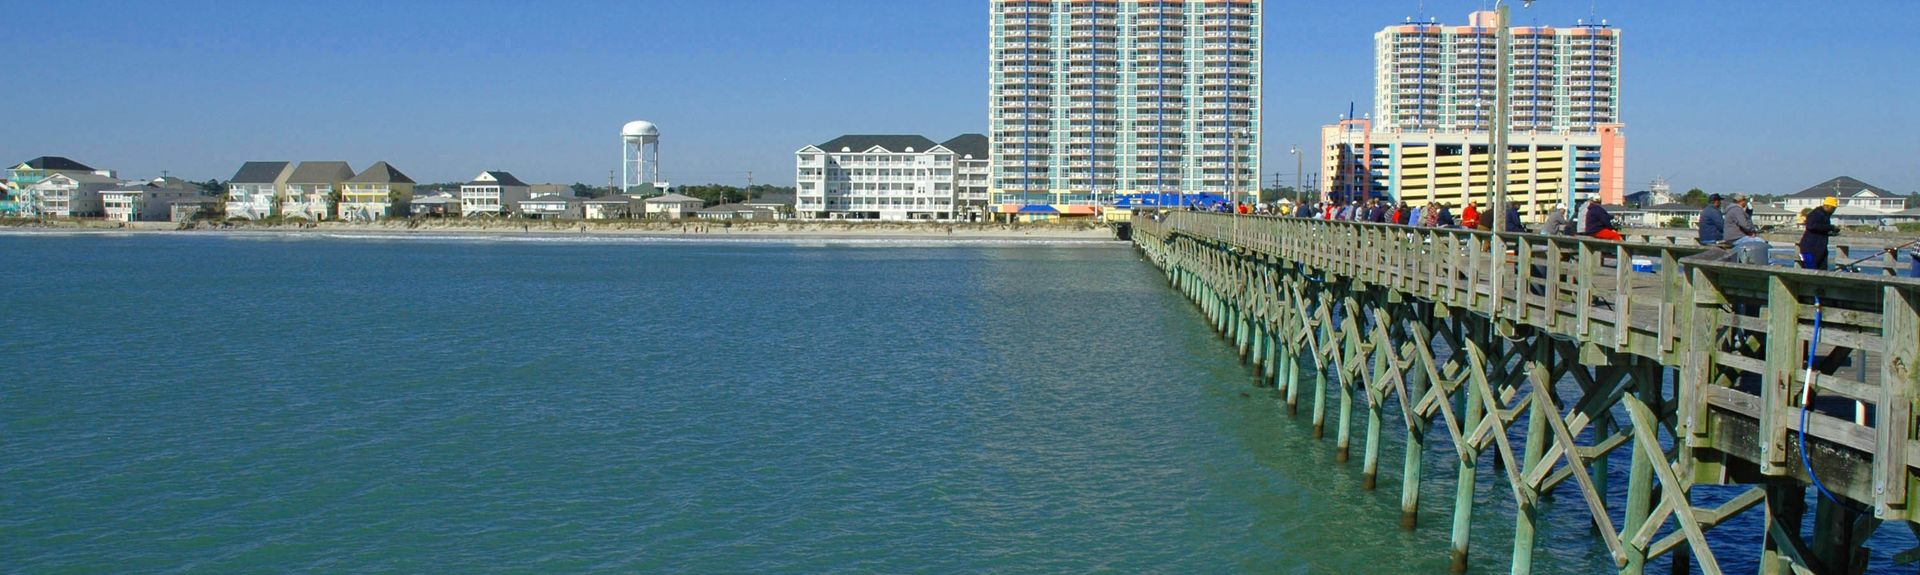 Cherry Grove Beach, North Myrtle Beach, Horry County, South Carolina, Verenigde Staten